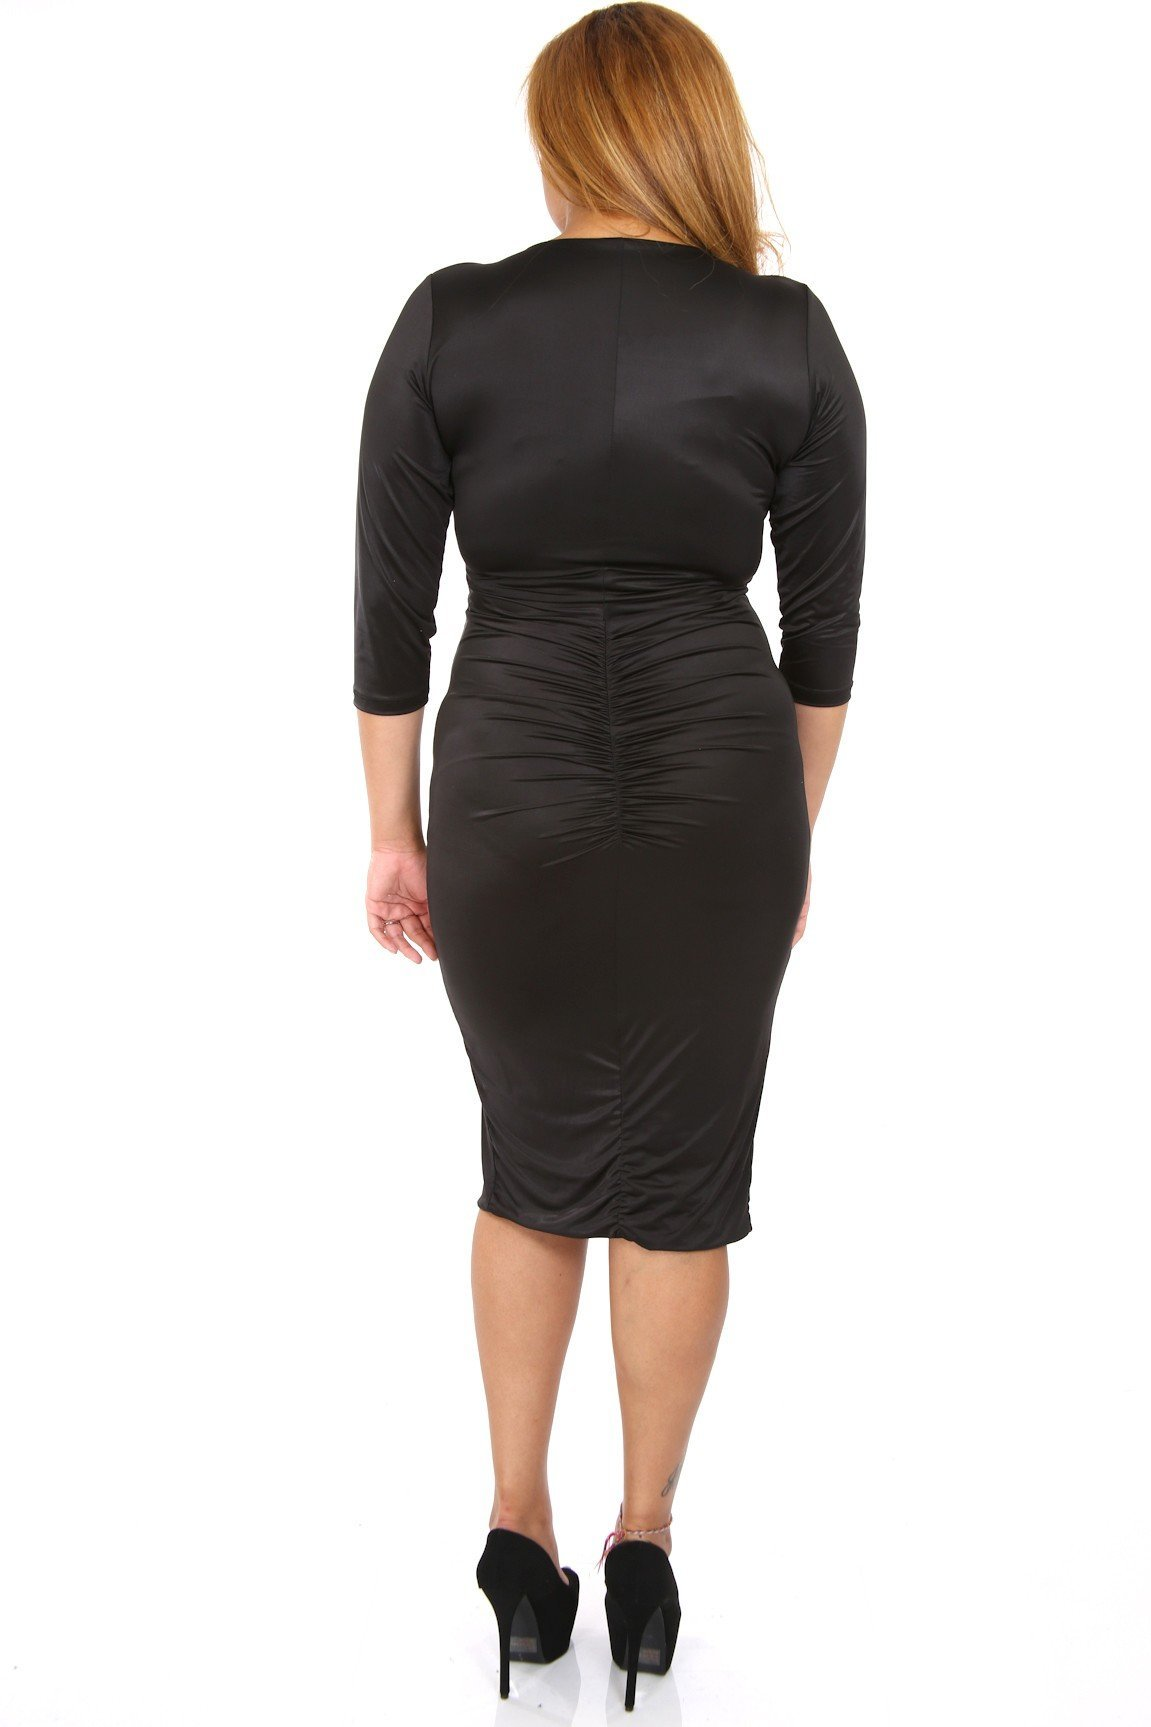 Scrunch Me On Half Sleeve Bodycon Dress